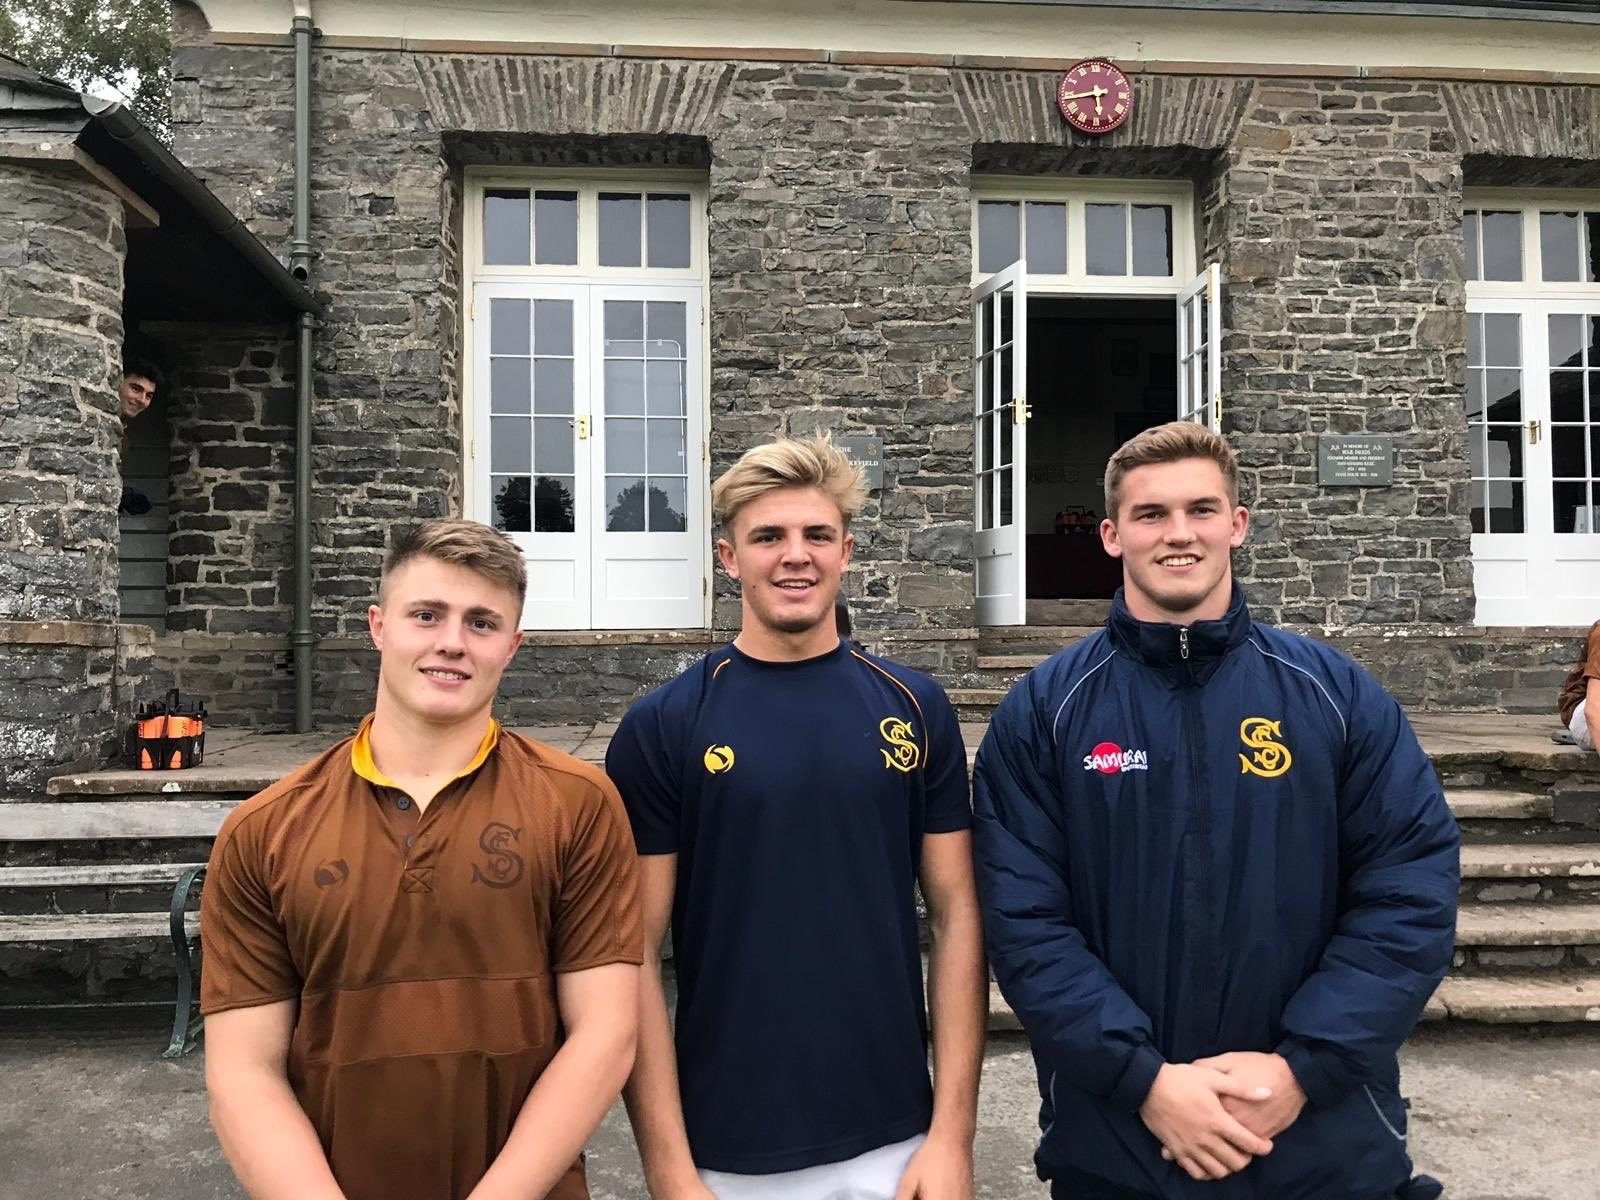 Sedbergh's three England Under 18 rubgy hopefuls. From the left are Will, Tom and Harry